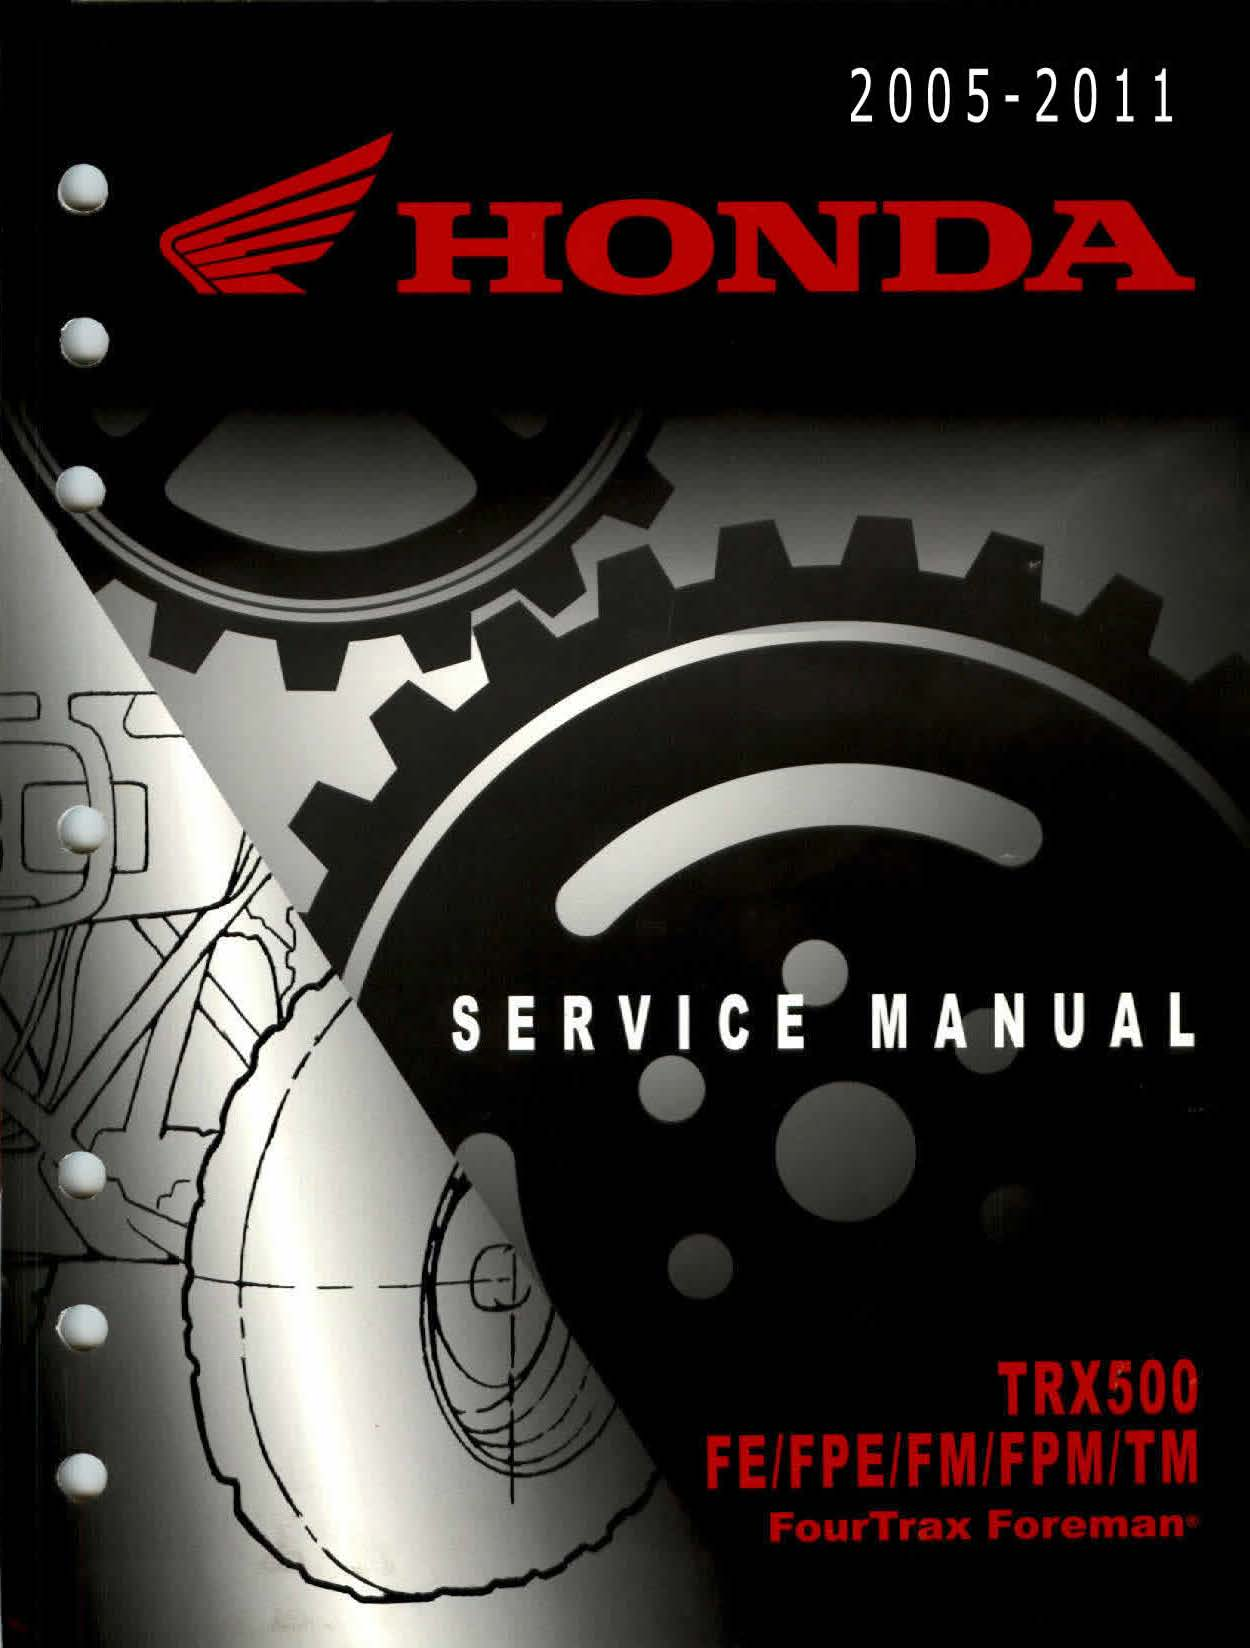 Workshopmanual for Honda TRX500 FE FPE FM FPM TM Foreman (2005-2011)